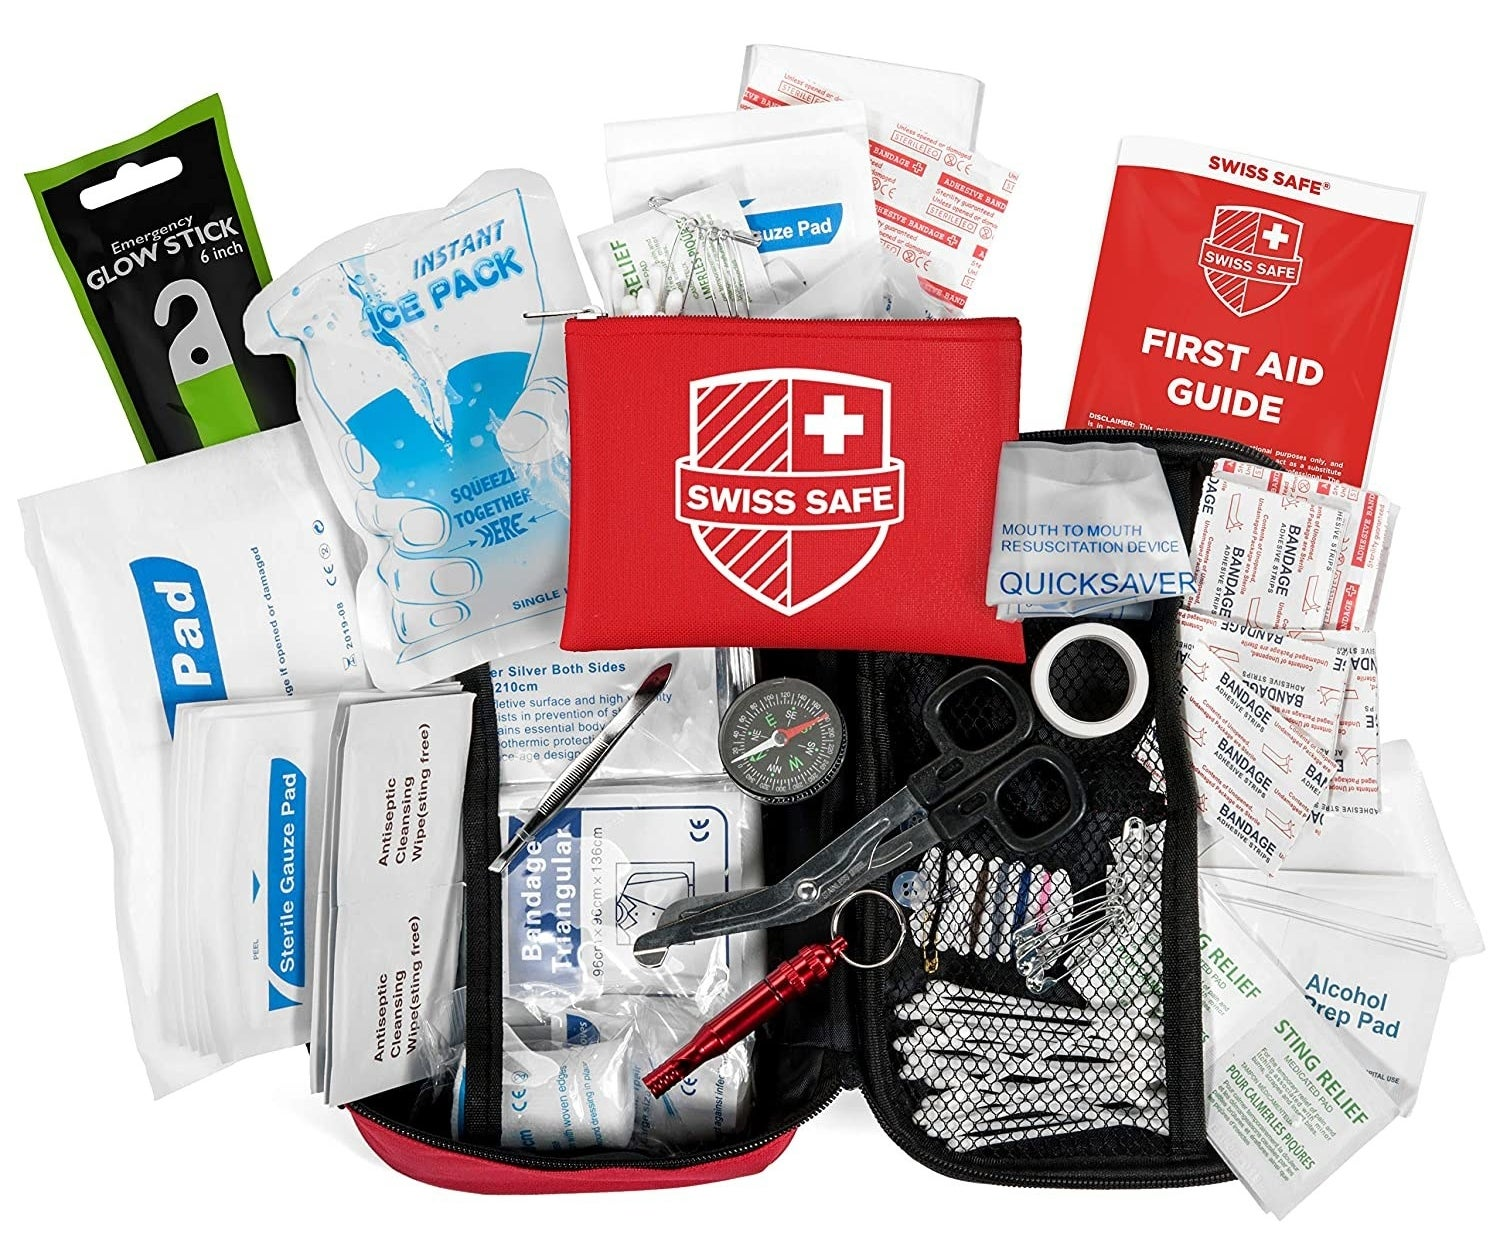 A Swiss Safe First Aid Kit that zips open into two halves with mesh components that hold all of the medical pieces